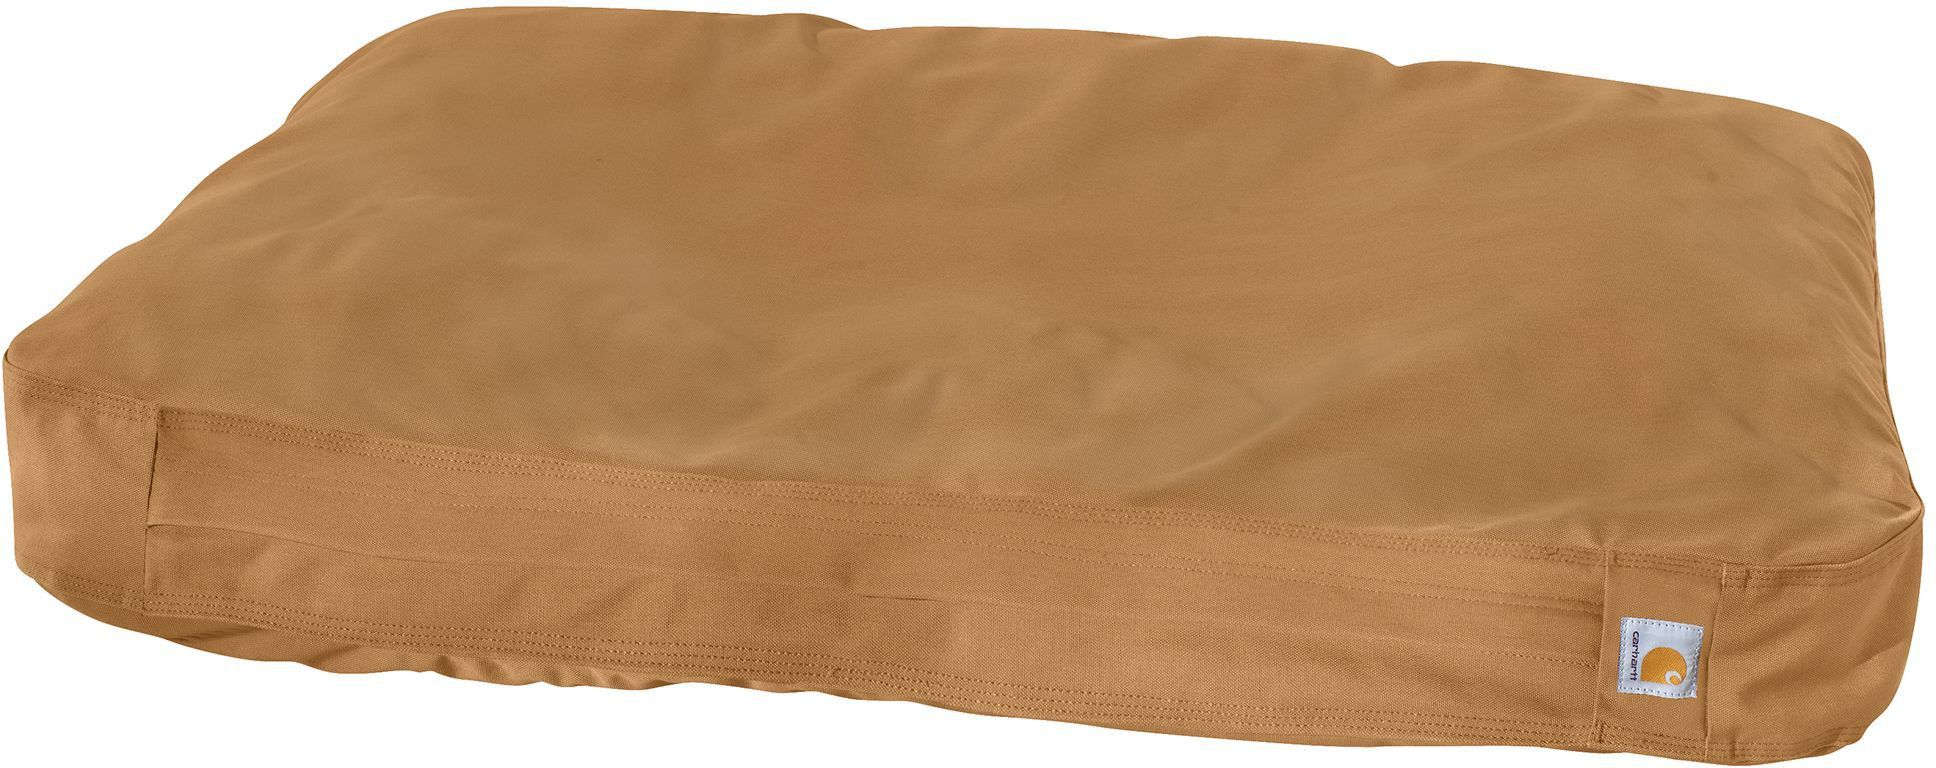 Carhartt Duck Dog Bed, Carhartt Brown Dog bed, Dogs